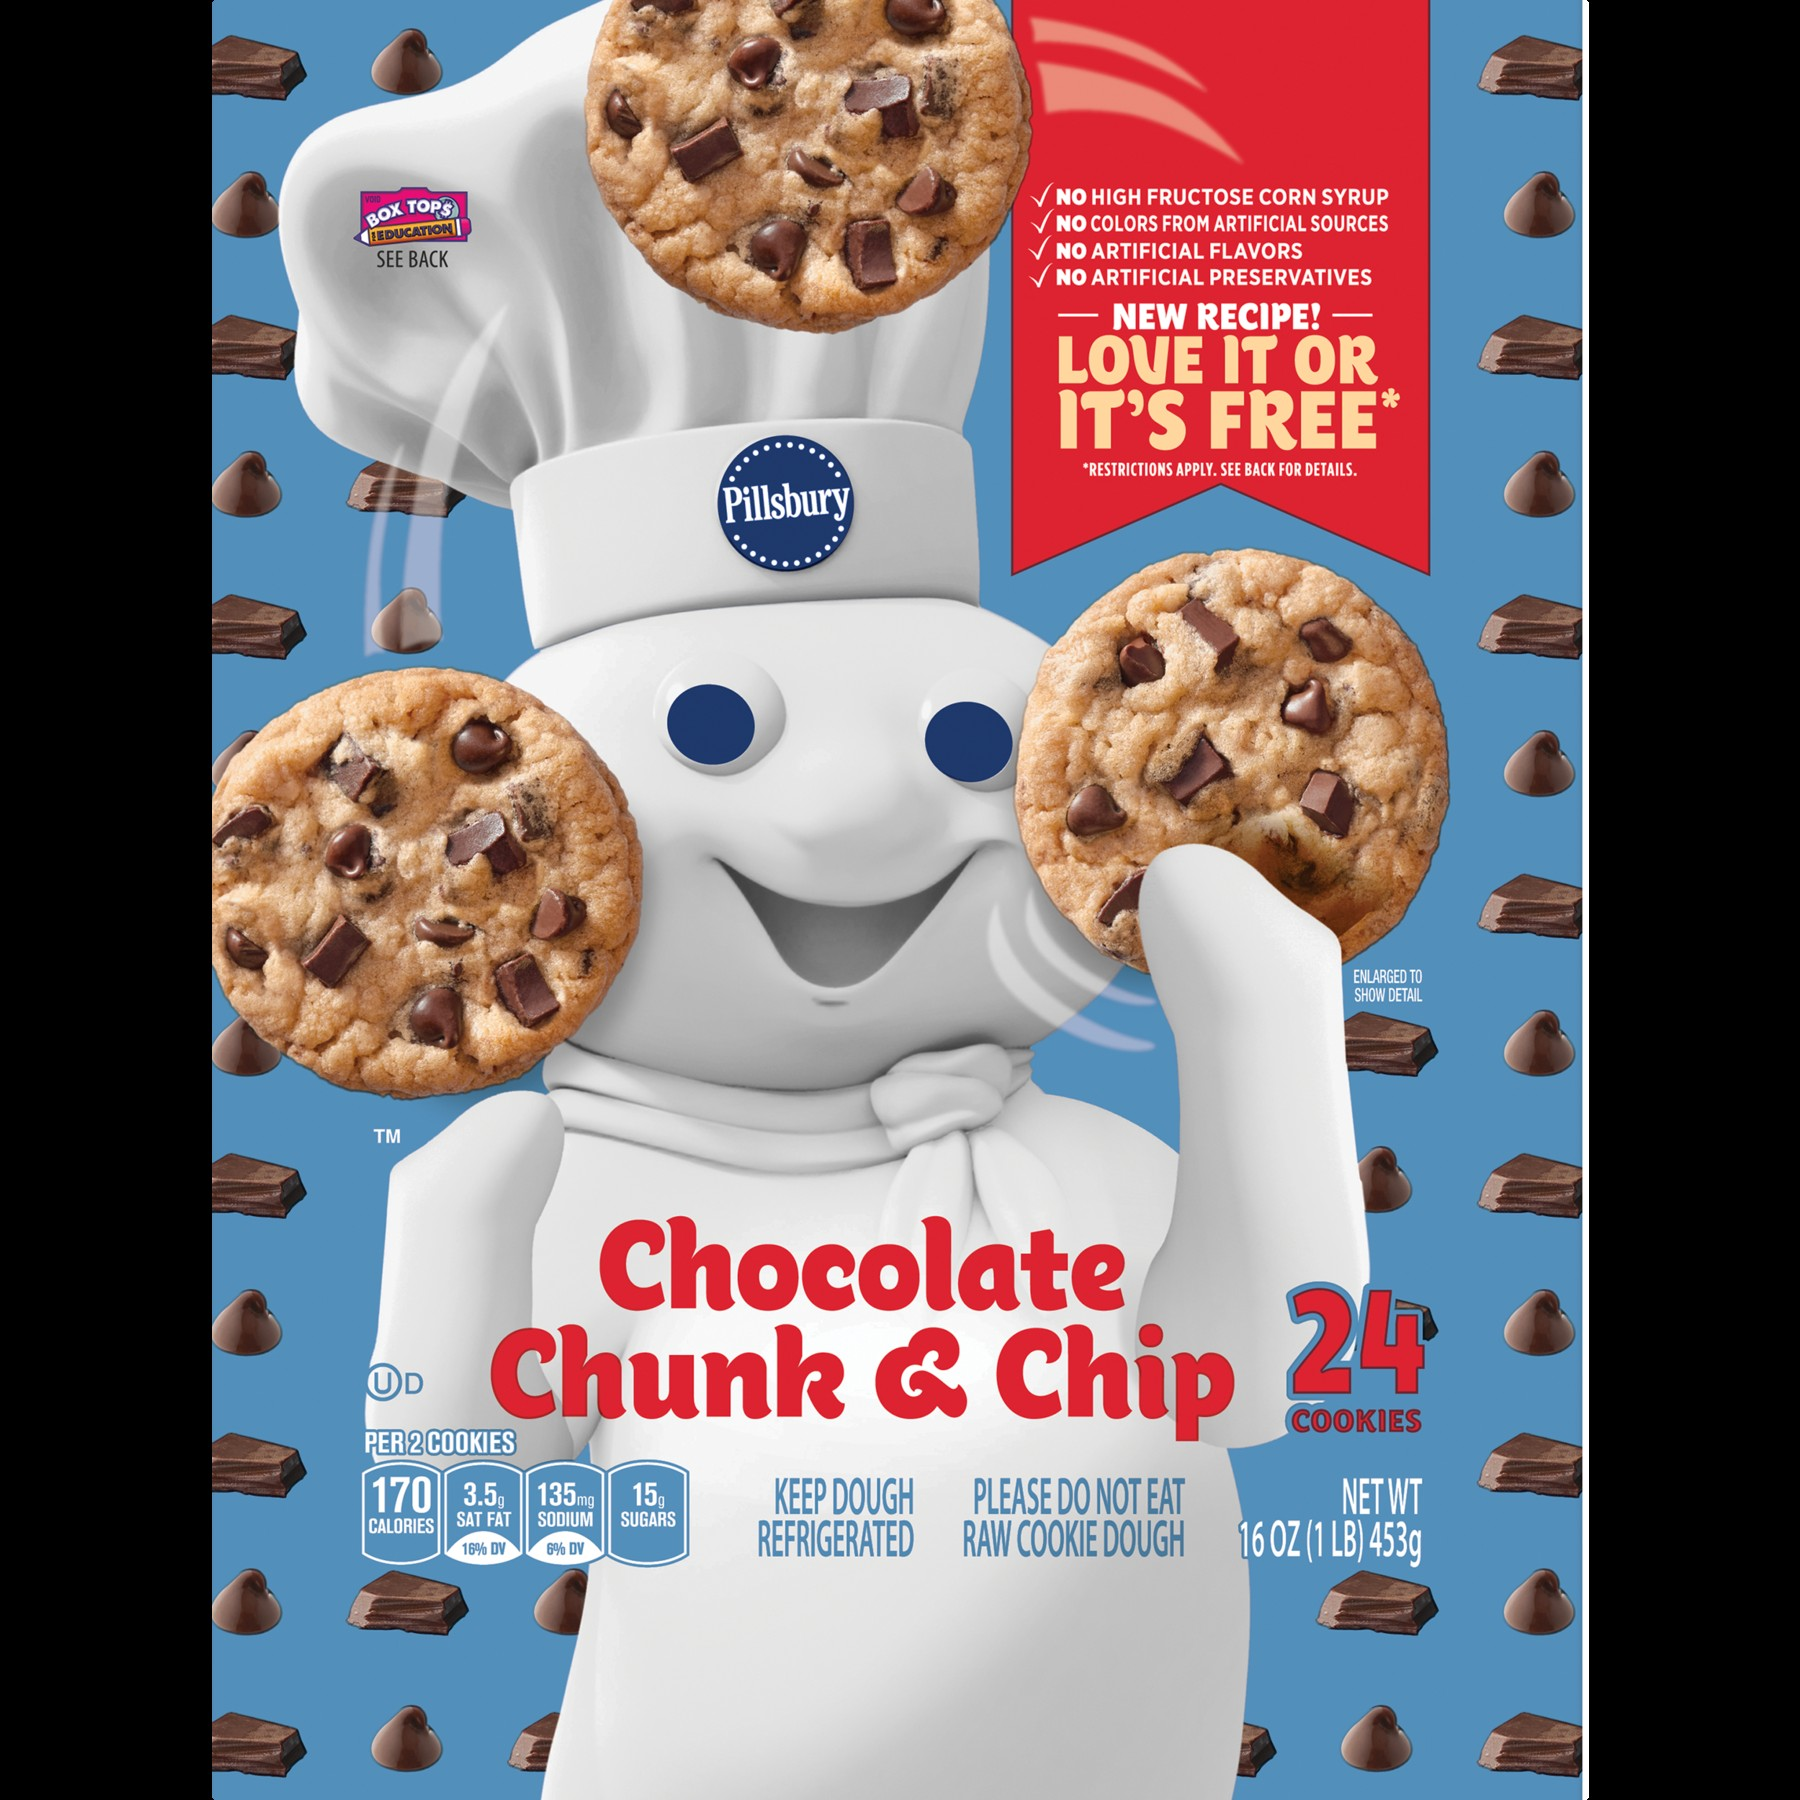 Bahan Wallpaper Dinding 3d Terbaru Untuk Pillsbury Ready to Bake Chocolate Chunk and Chip Cookies 24 Ct 16